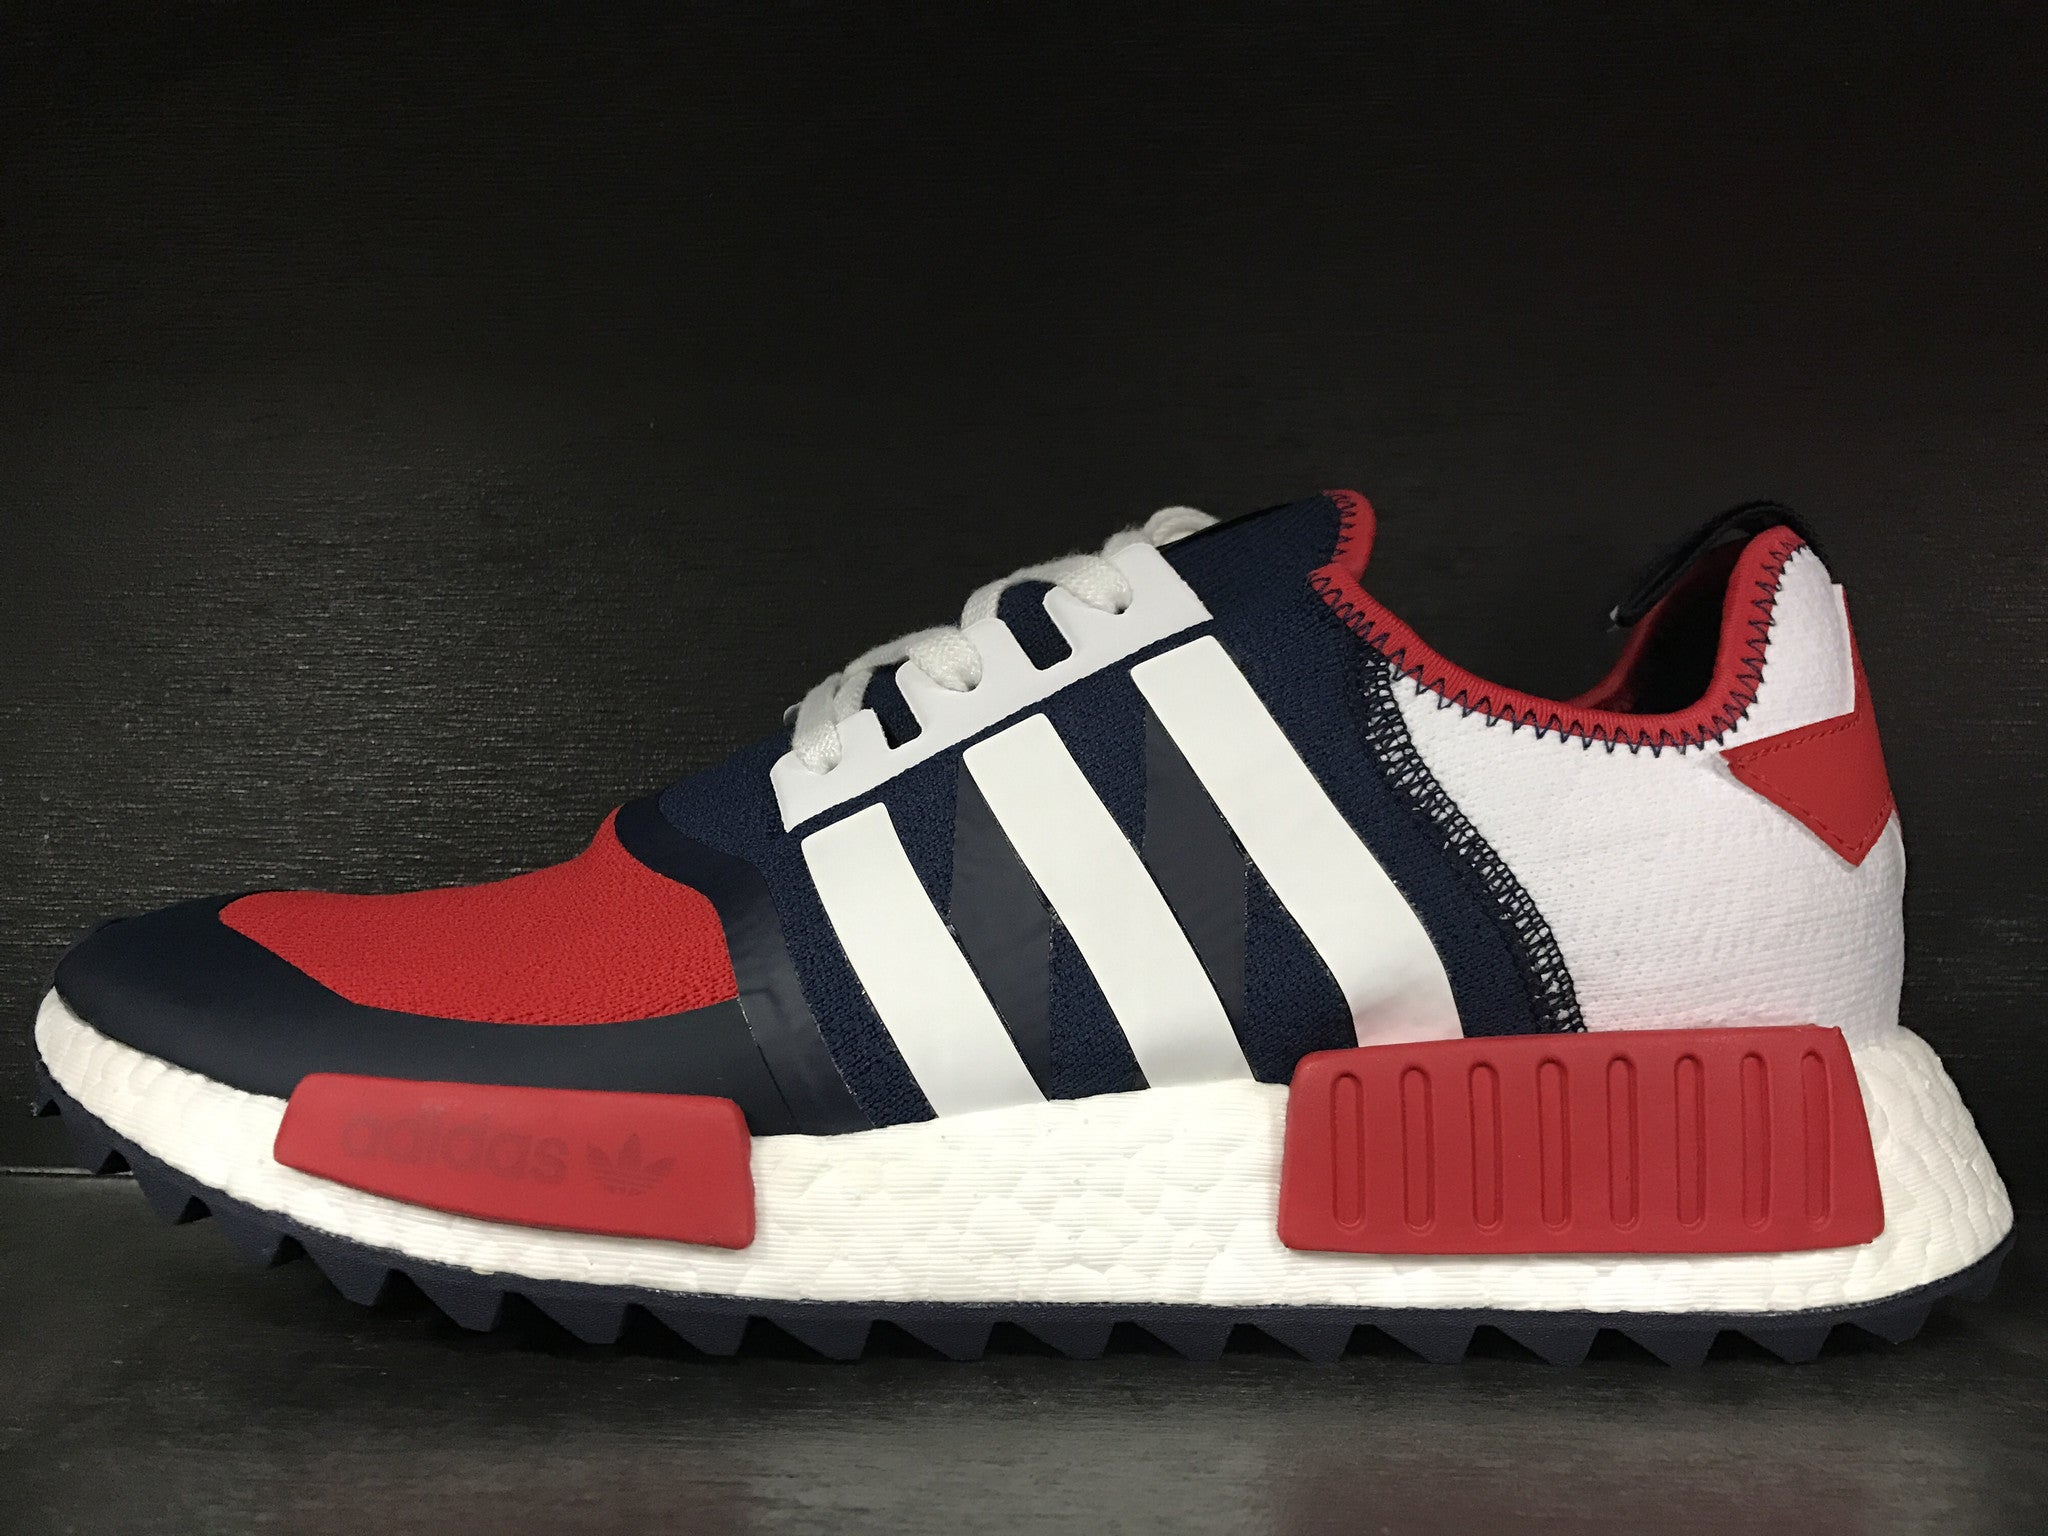 Adidas NMD R1 Trail 'White Mountaineering Collegiate Navy'